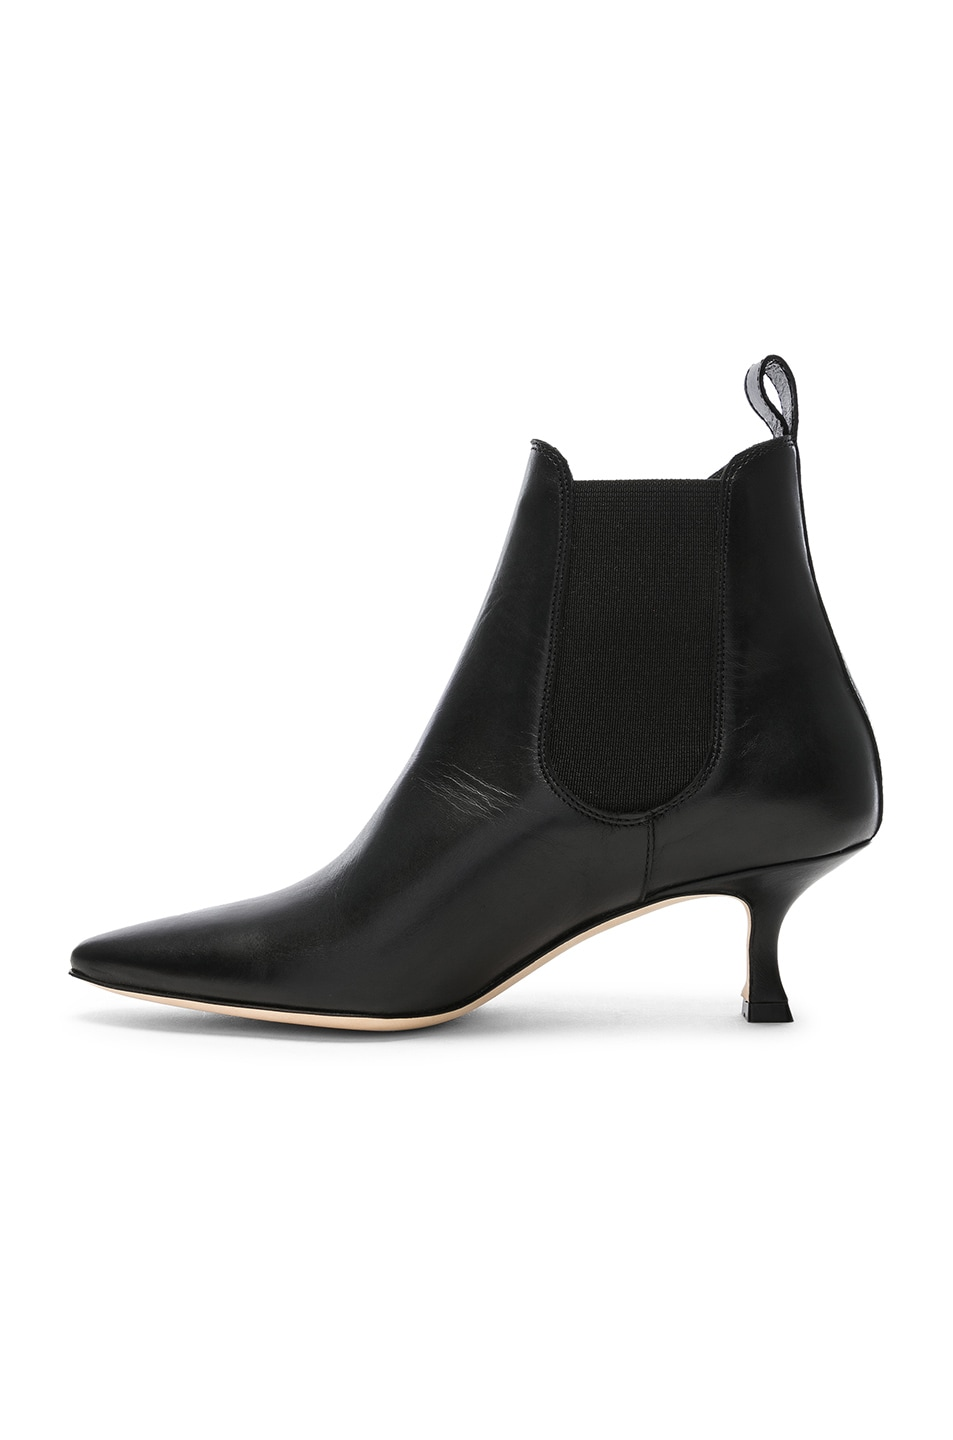 Image 5 of Manolo Blahnik Leather Chelsa 50 Boots in Black